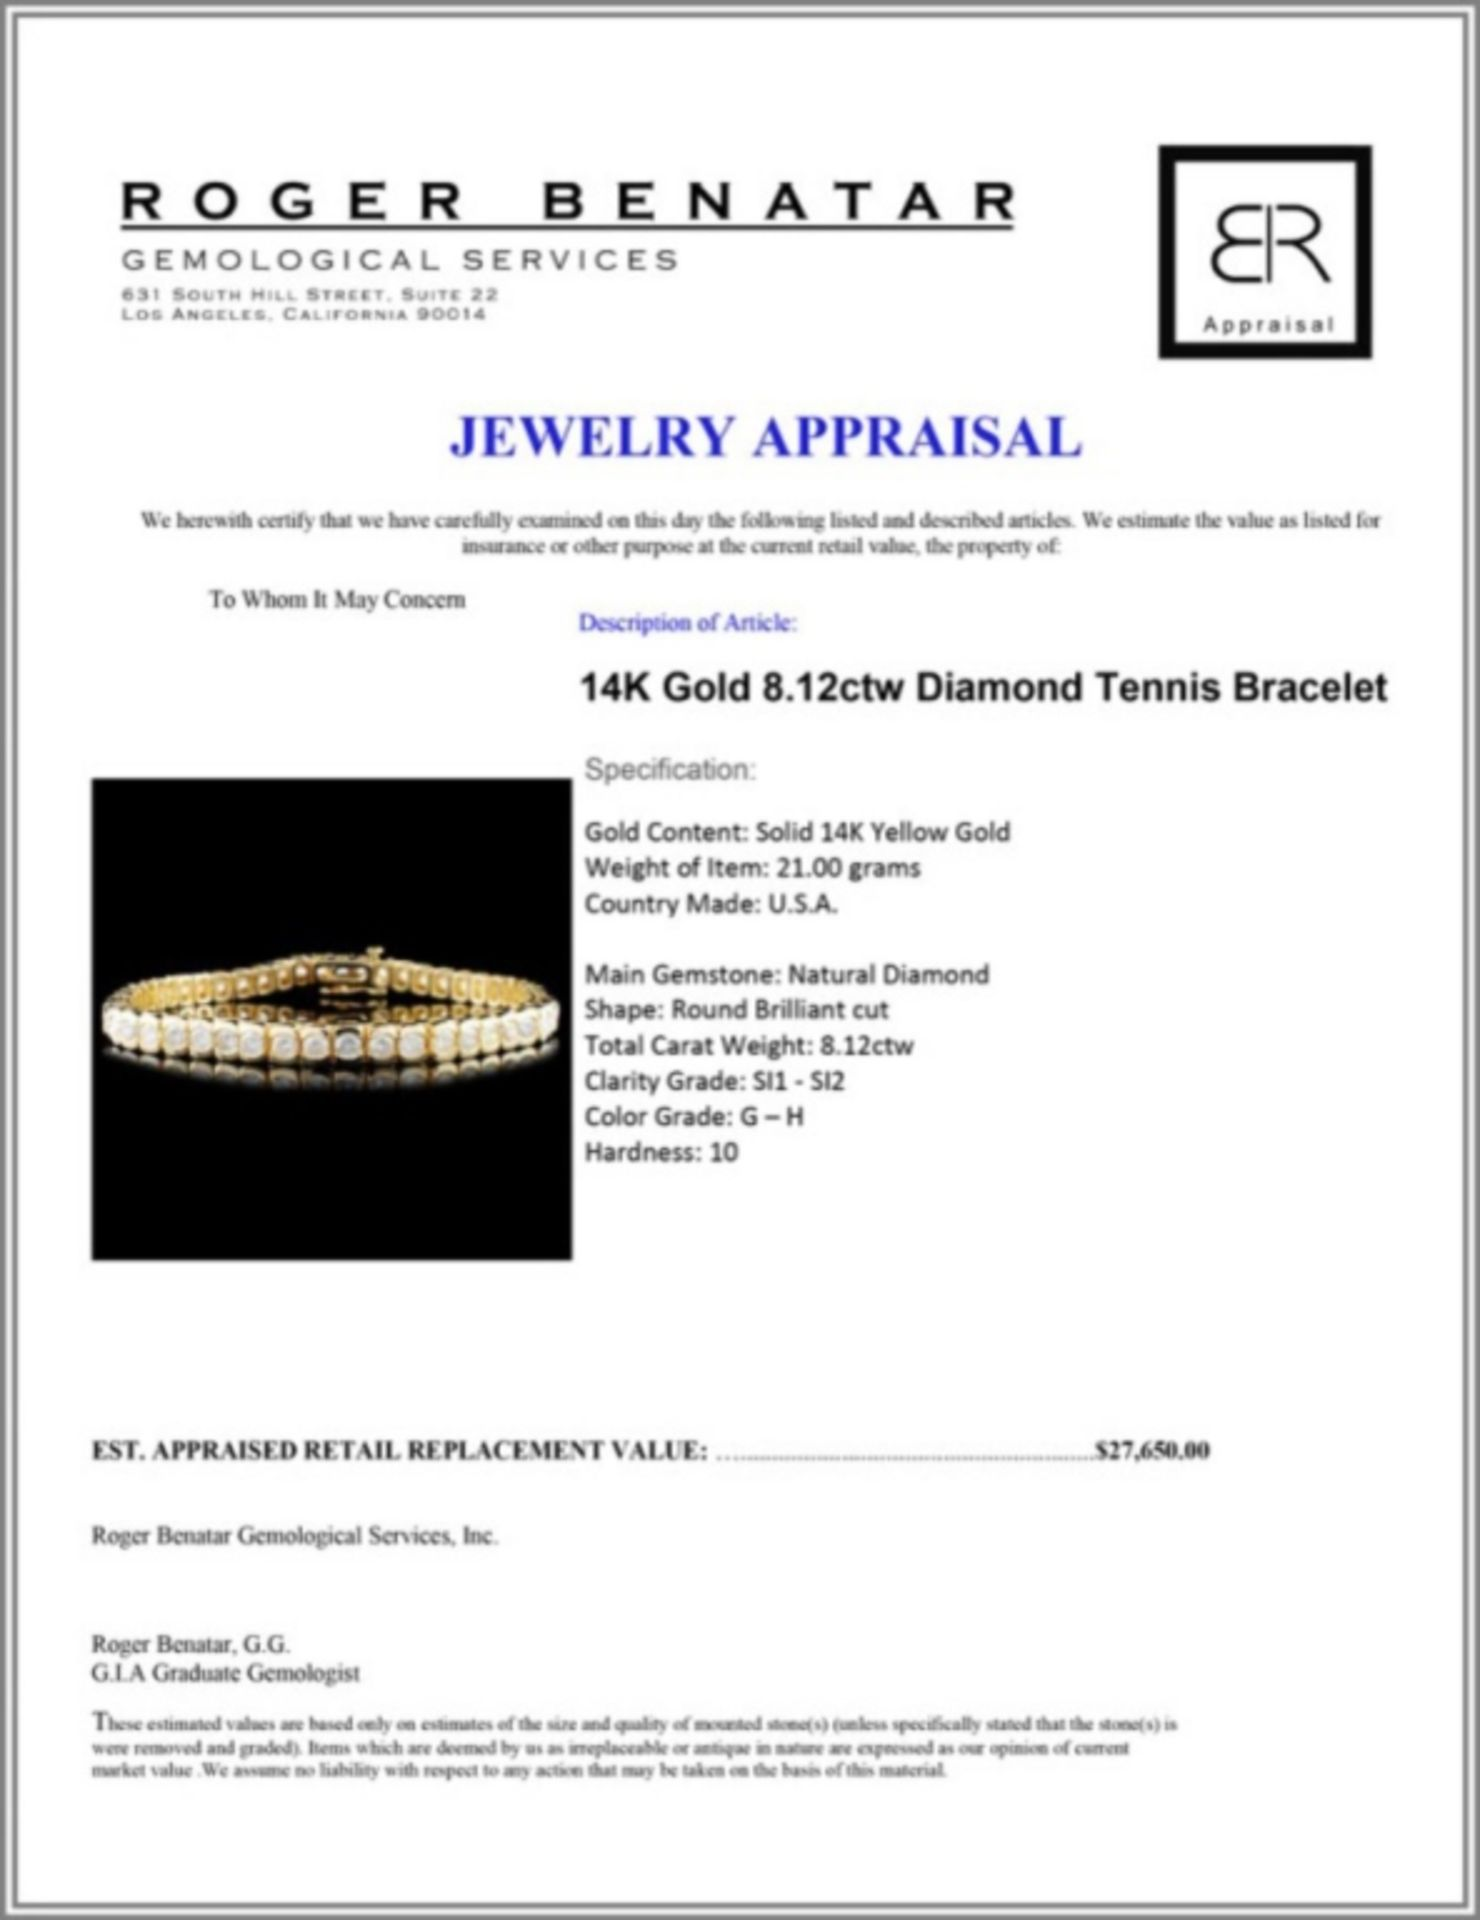 14K Gold 8.12ctw Diamond Tennis Bracelet - Image 3 of 3